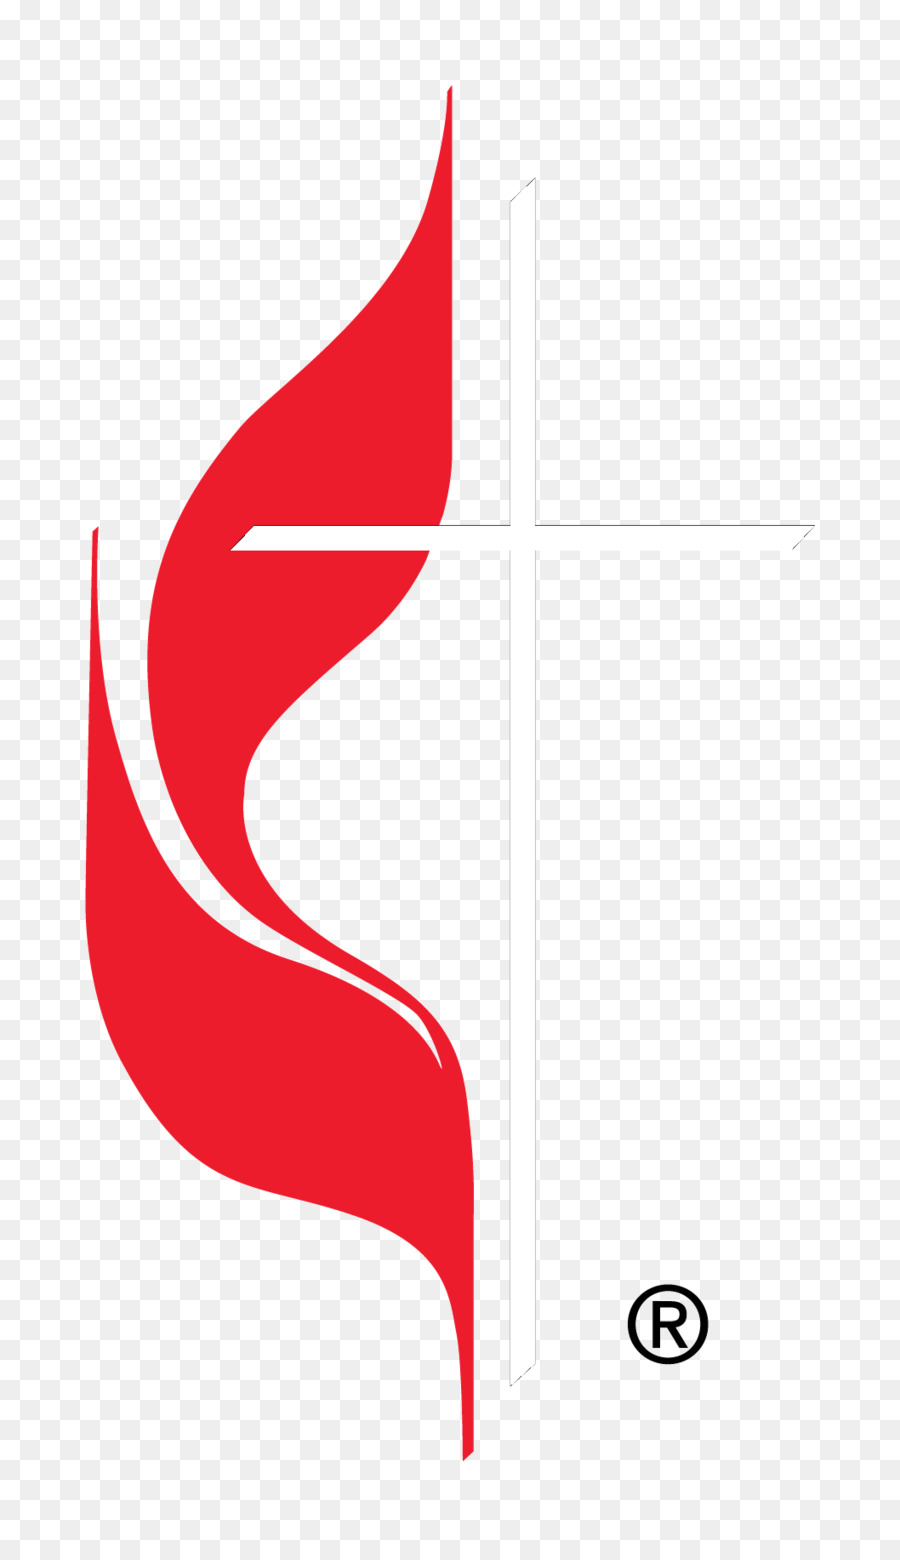 cross and flame methodism united methodist church christian cross rh kisspng com united methodist cross and flame clipart free methodist cross and flame clipart